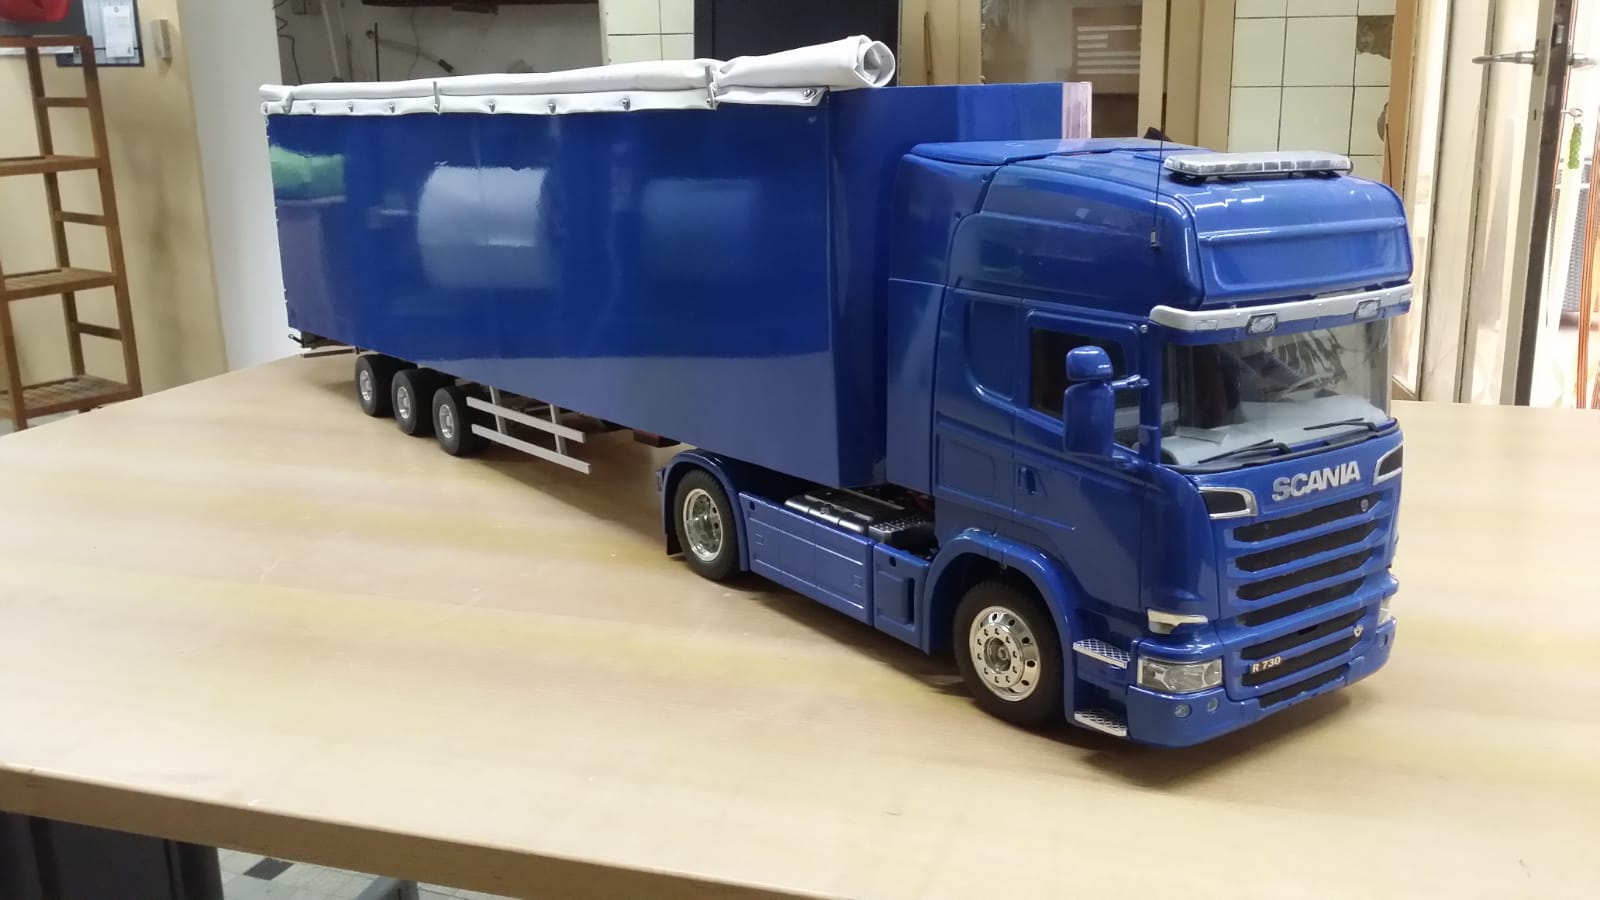 Scania Streamline R730 (verkerk front en walking floor trailer )